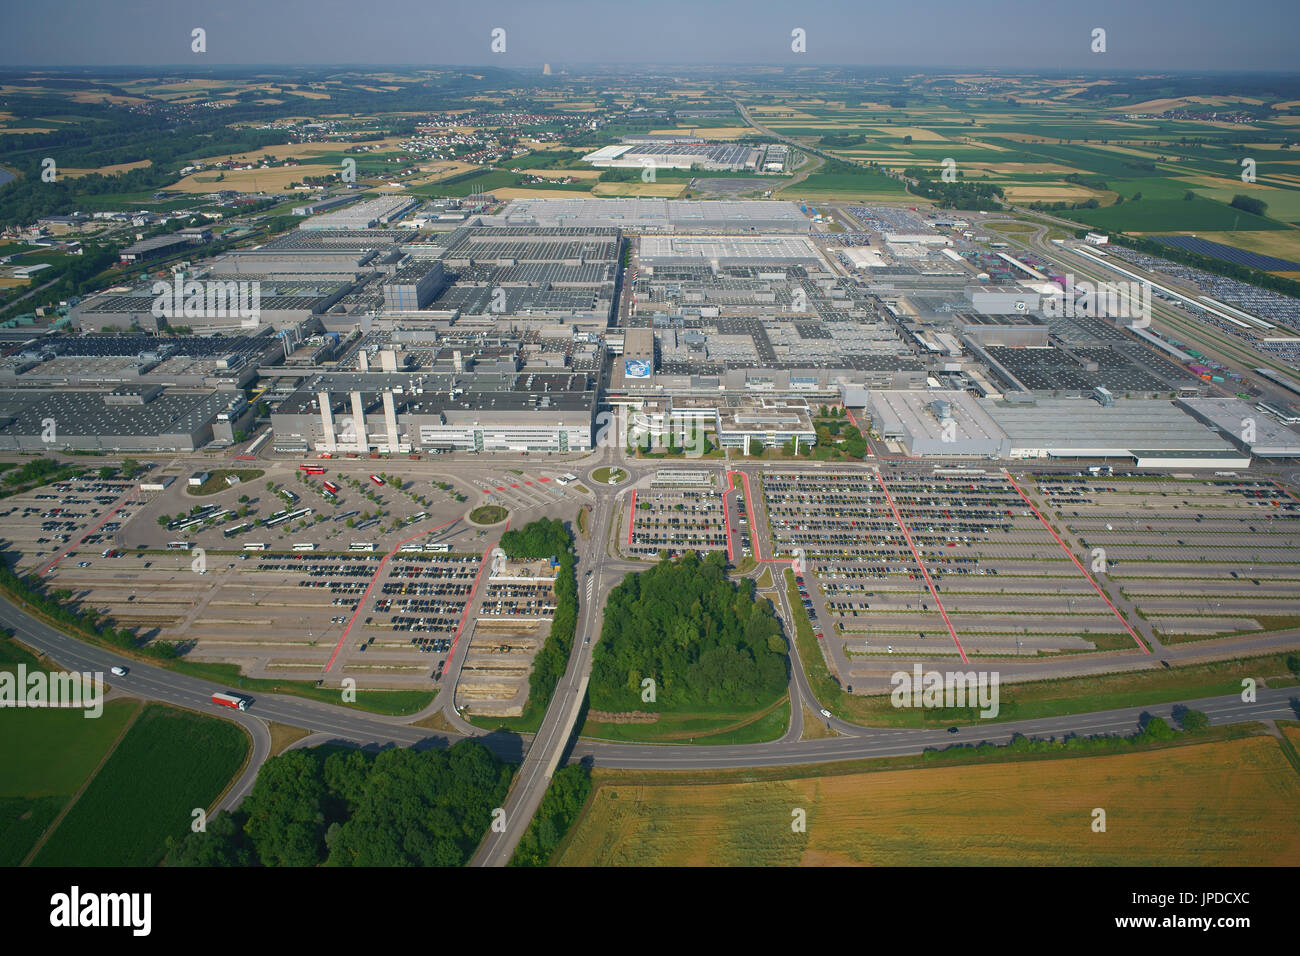 MEGA FACTORY WITH A YEARLY PRODUCTION OF 340,000 CARS (in 2015) (aerial view). BMW Group Plant Dingolfing, Bavaria, Stock Photo